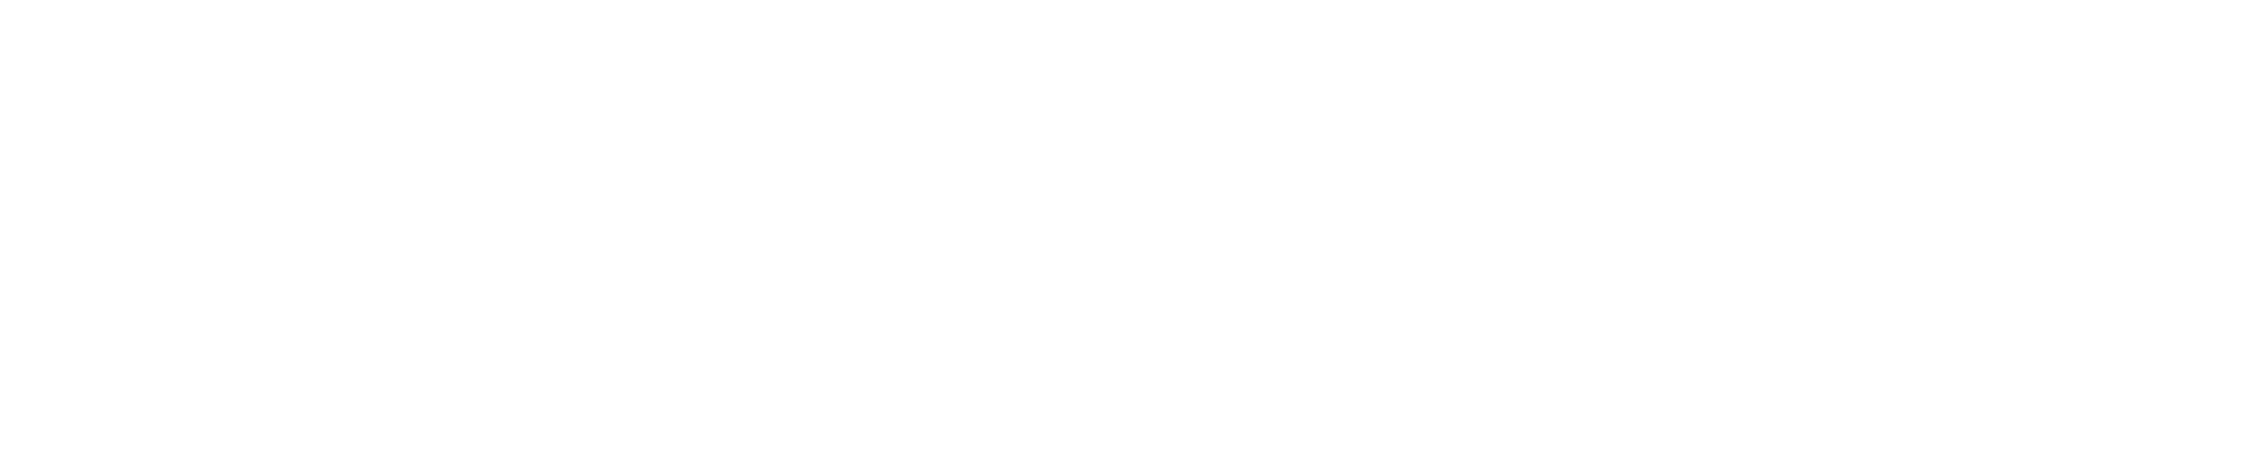 wsj 02.png